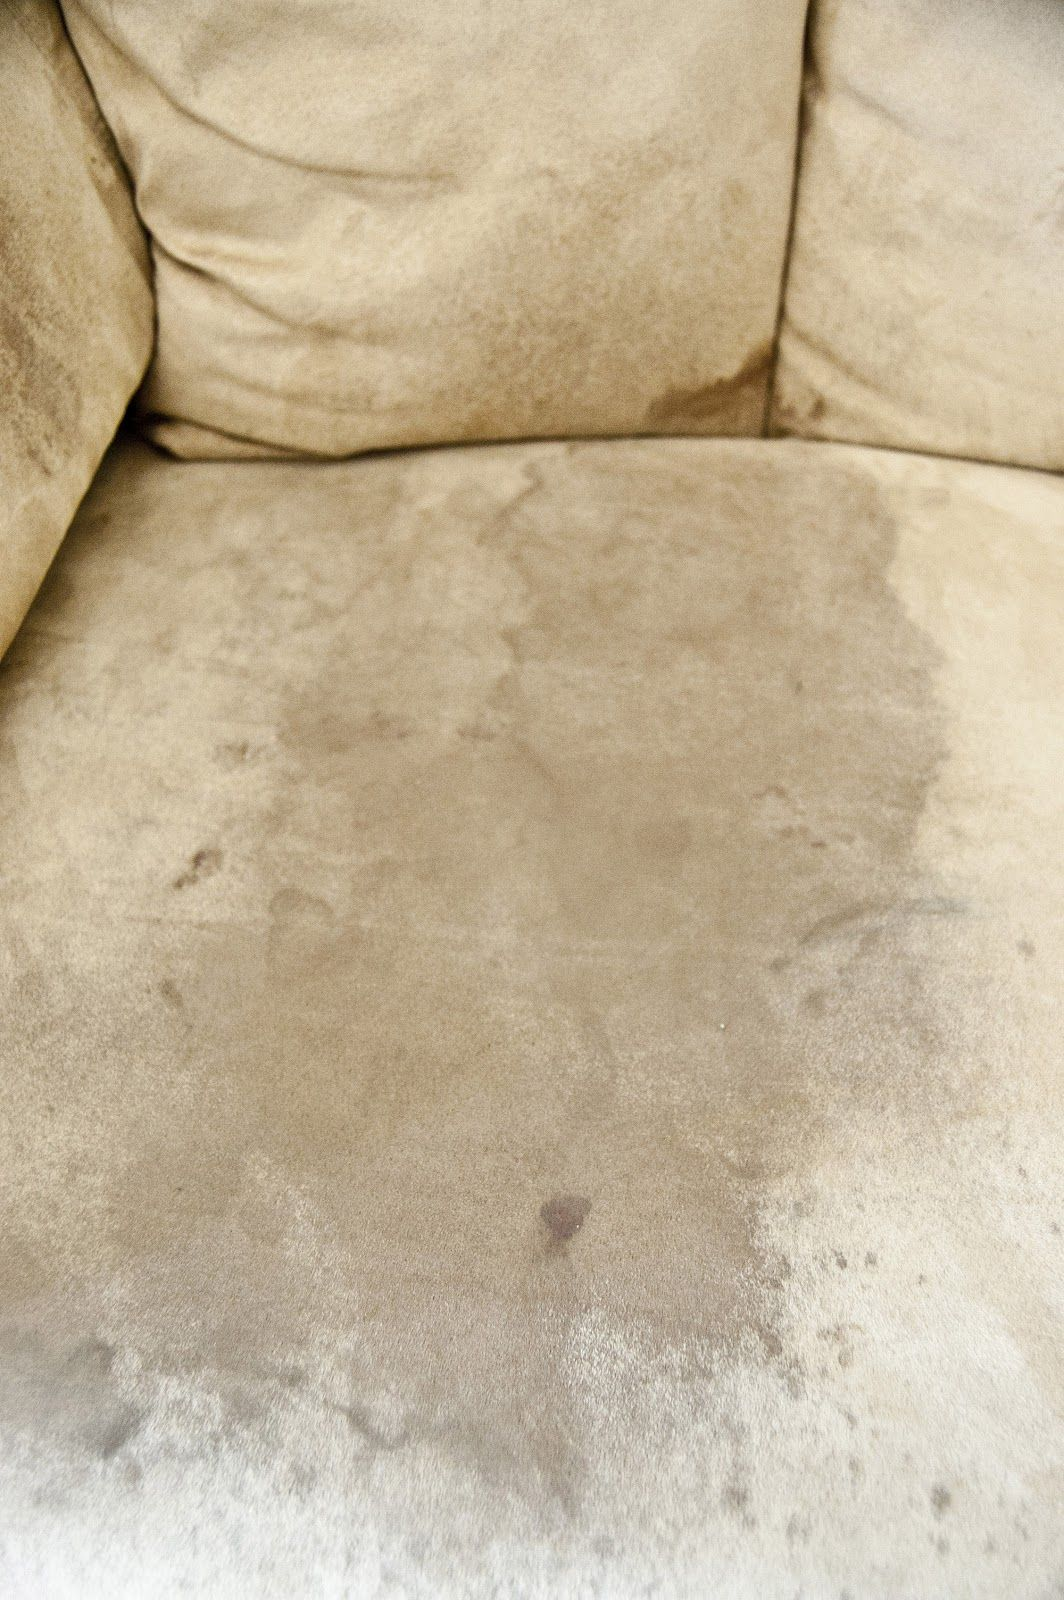 Stoffsofa Reinigen 551 East How To Clean A Microfiber Couch House Cleaning